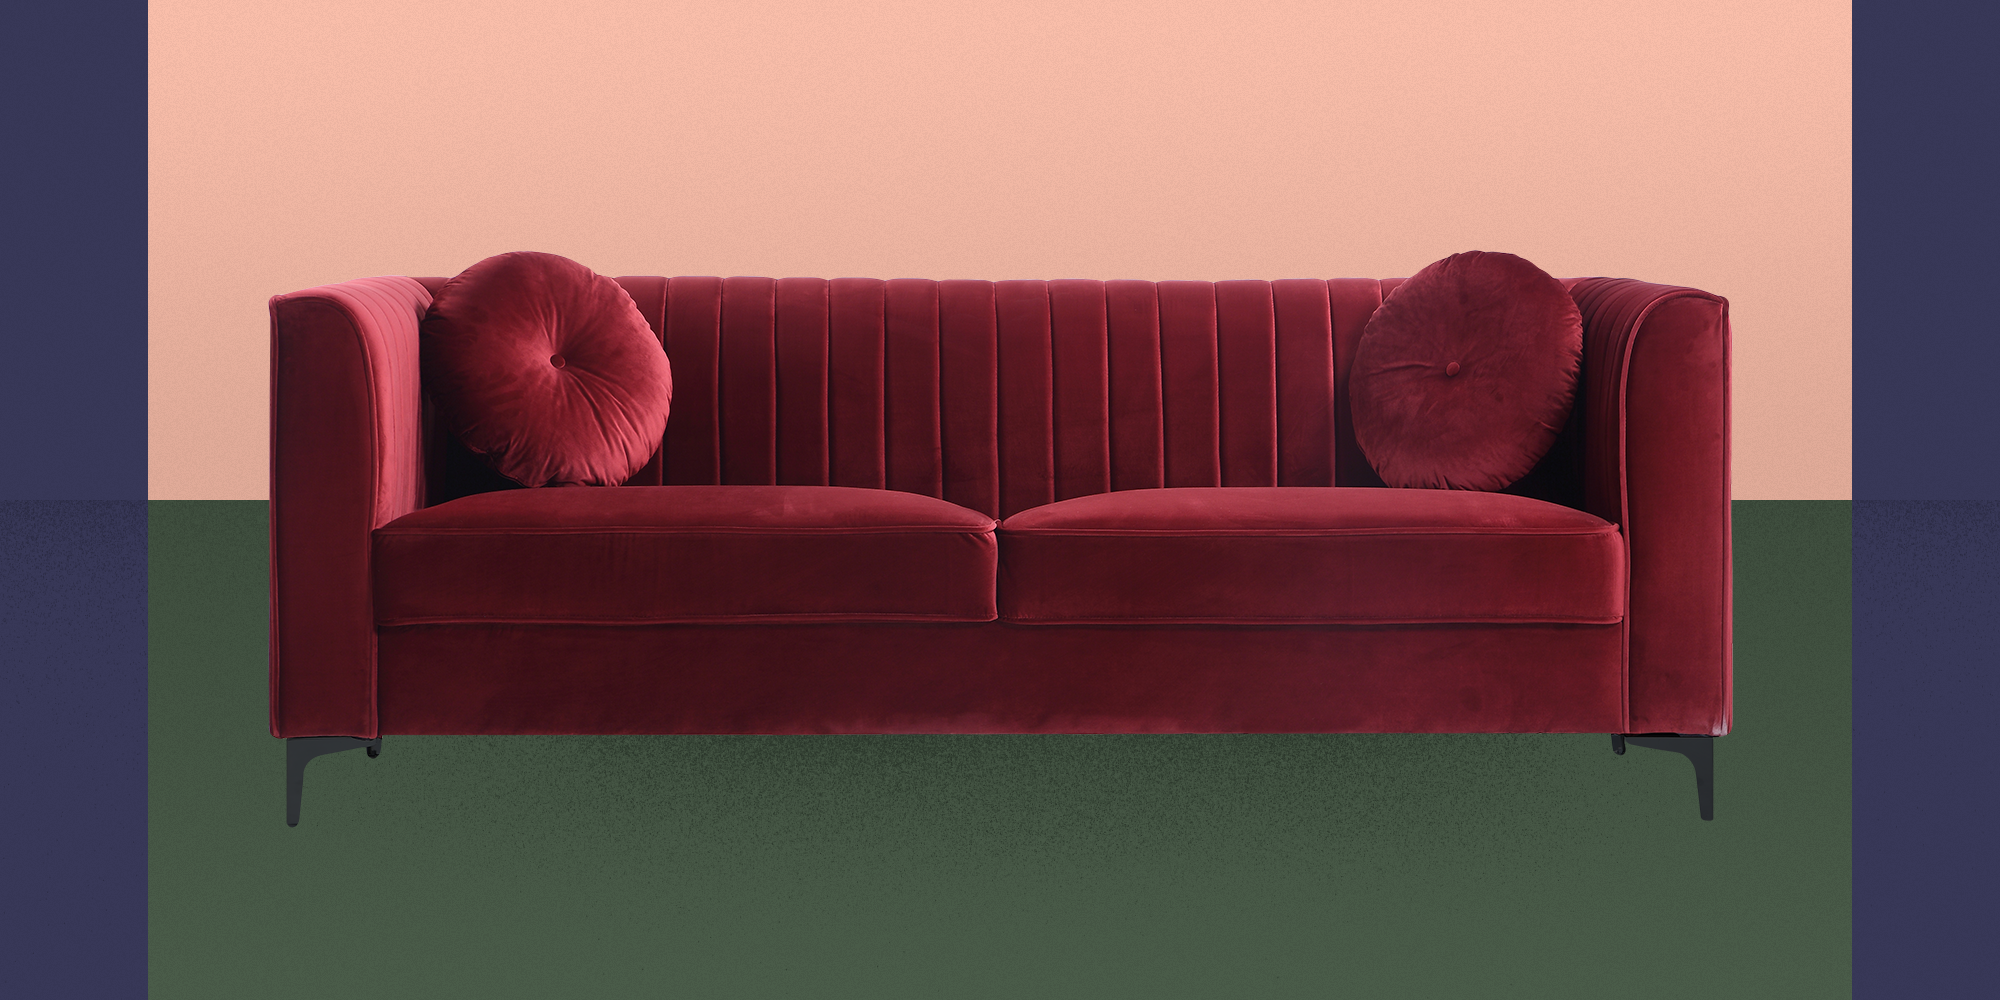 The Most Stylish Sofas In Every Price Range